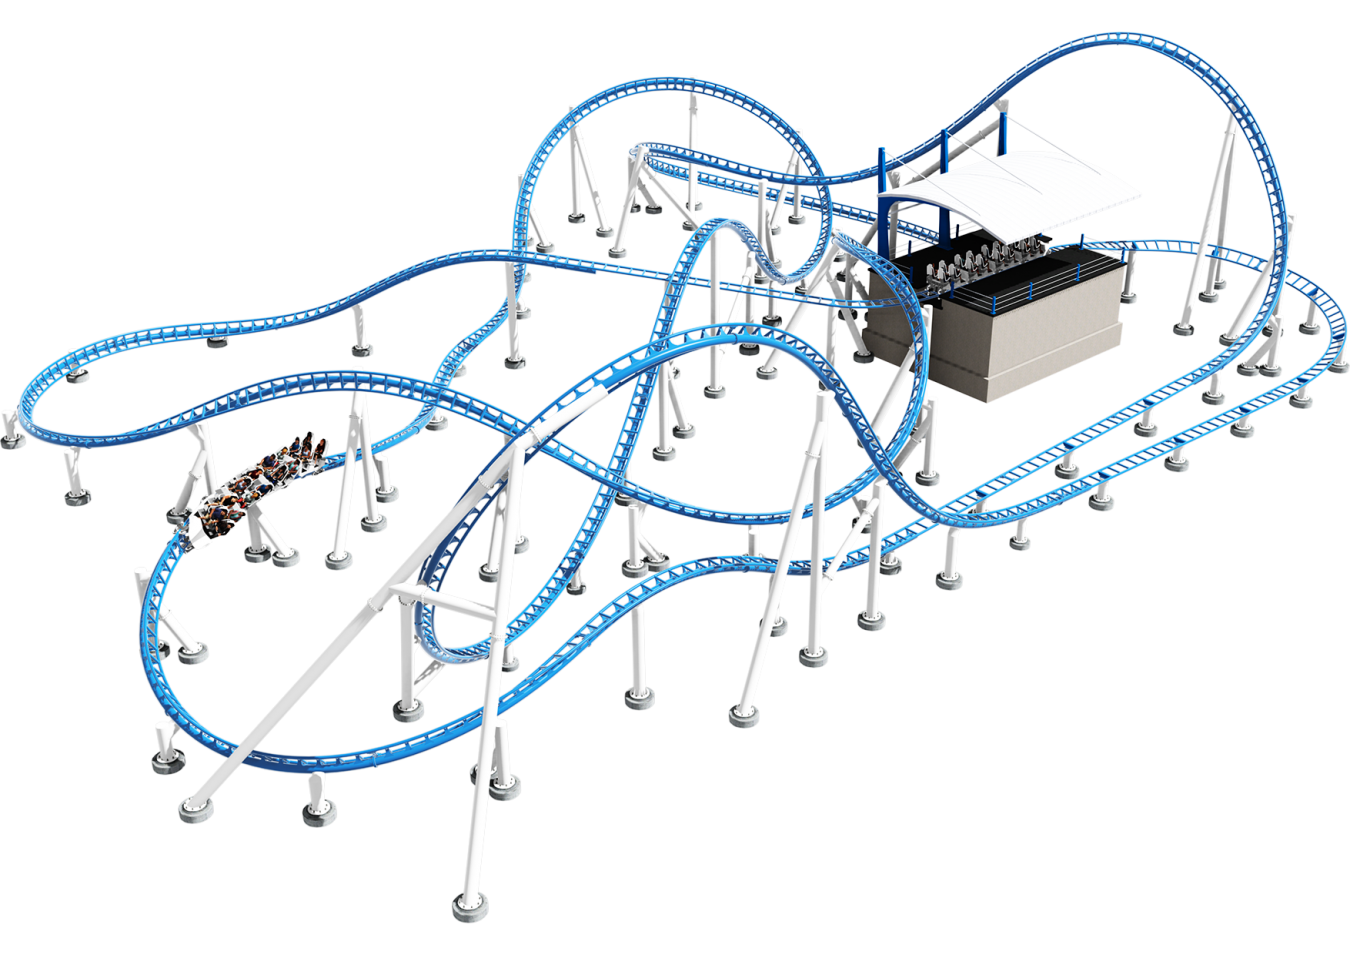 intamin-lsm-roller-coaster-layout-double-launch-2x12-1.png